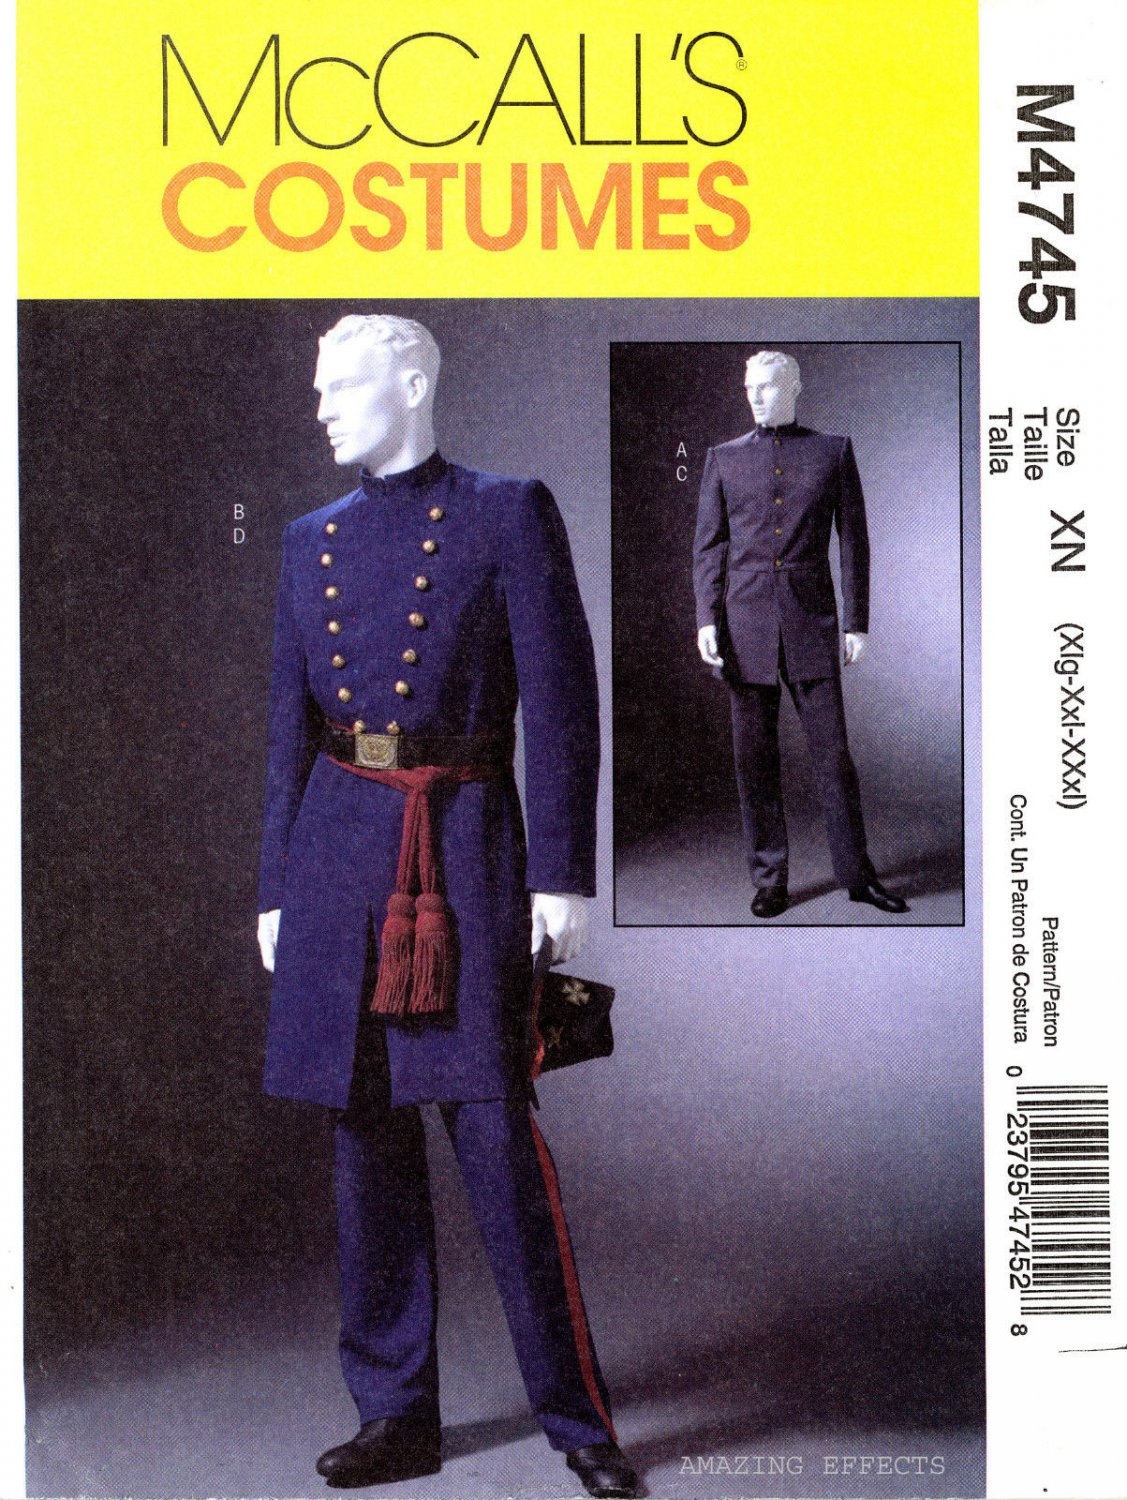 McCALL'S 4745 CIVIL WAR UNIFORM Men's XLG--XXLG-XXXLG oop